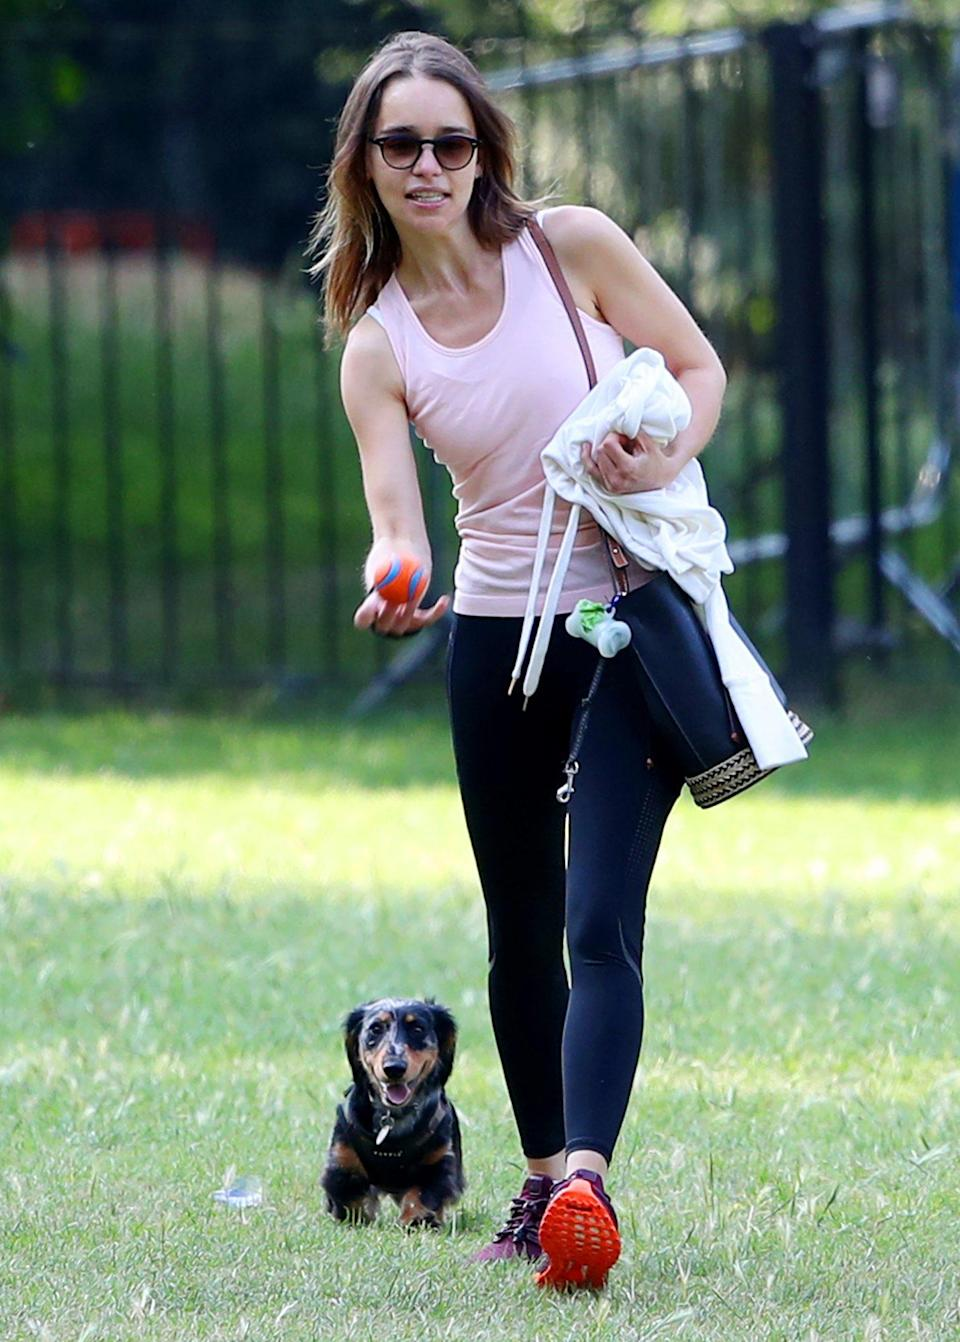 <p>Emilia Clarke plays fetch with her dog on Wednesday in London. </p>